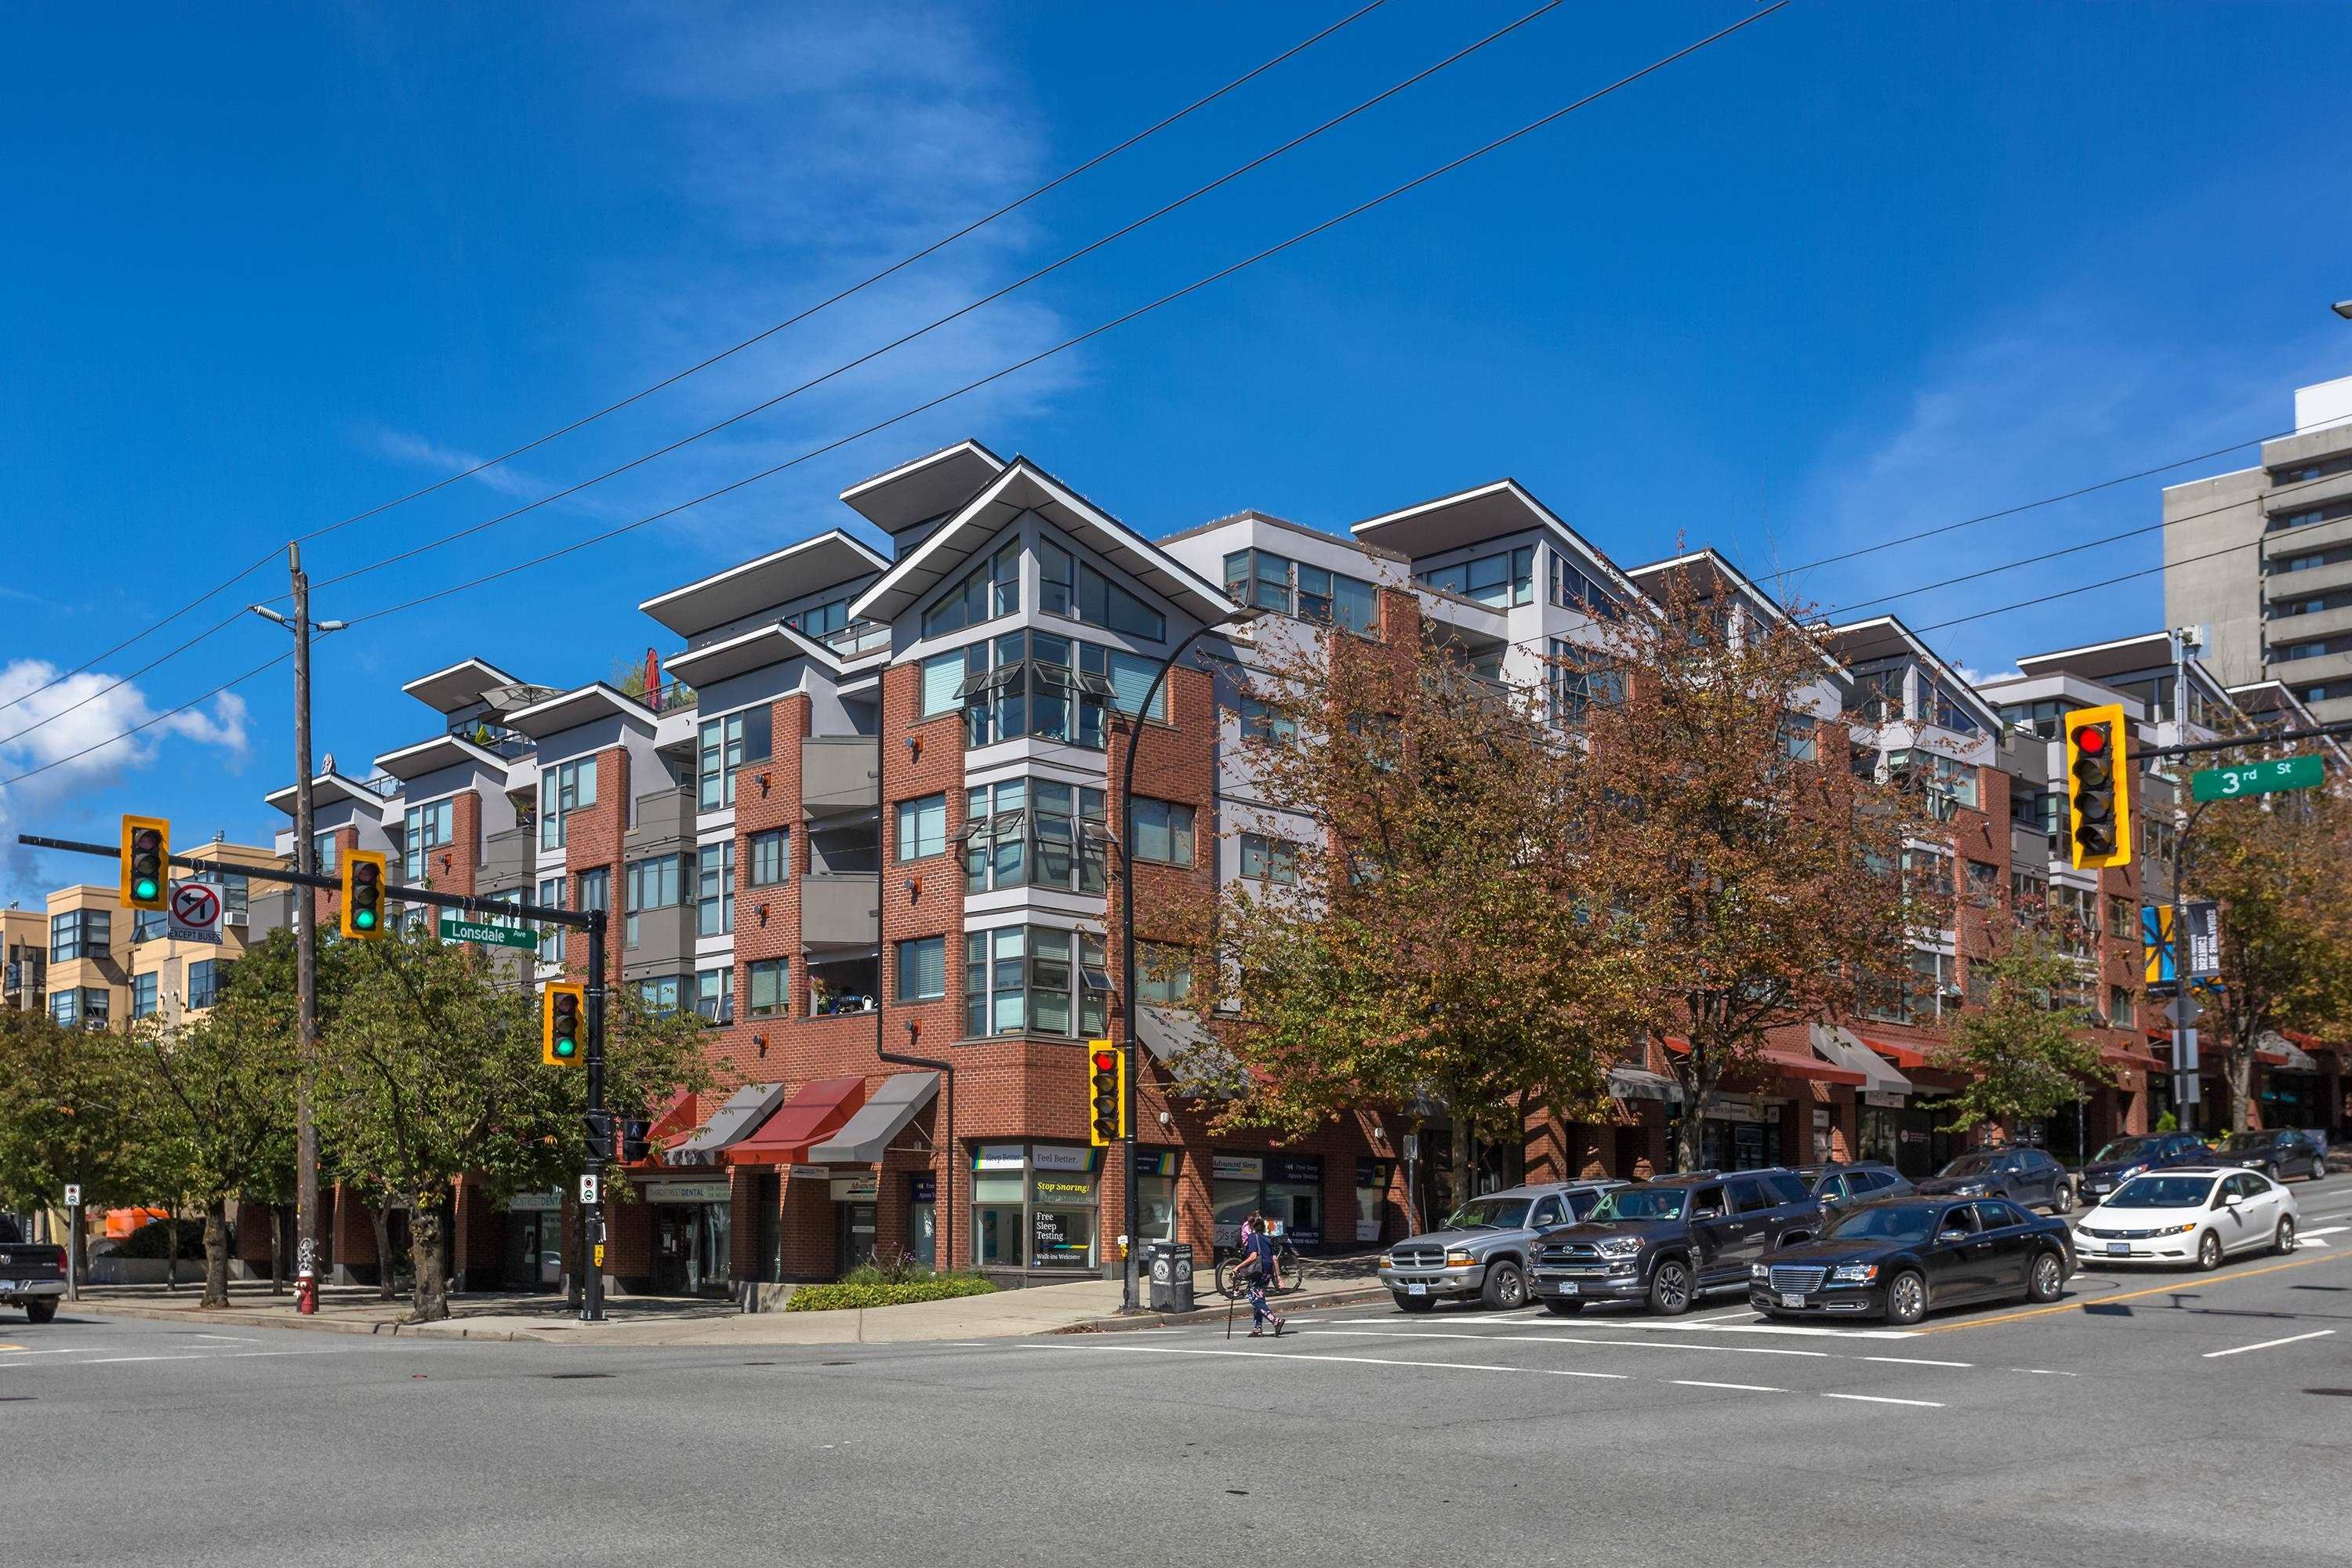 """Main Photo: 408 305 LONSDALE Avenue in North Vancouver: Lower Lonsdale Condo for sale in """"THE MET"""" : MLS®# R2615053"""